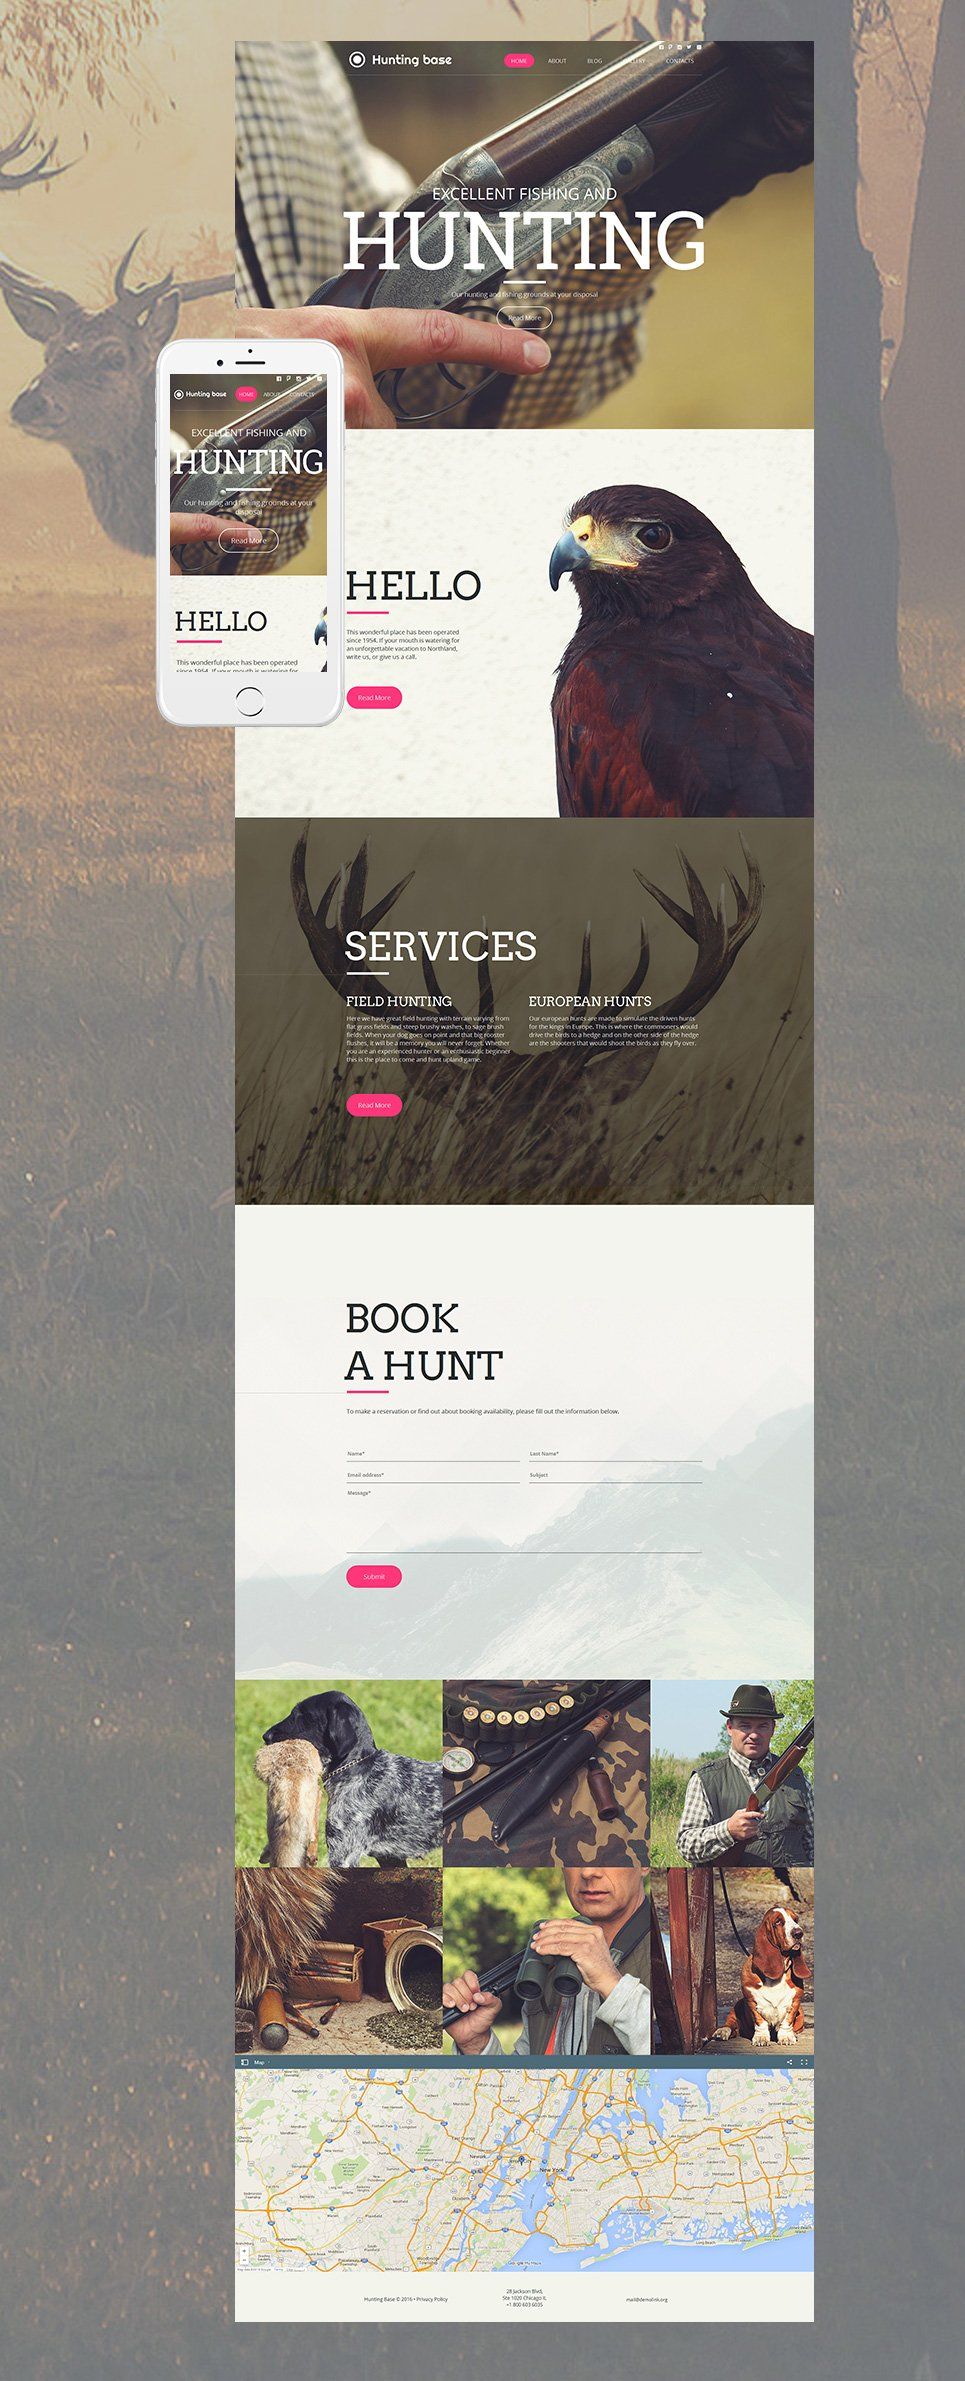 Hunting Base HTML Website Template - image